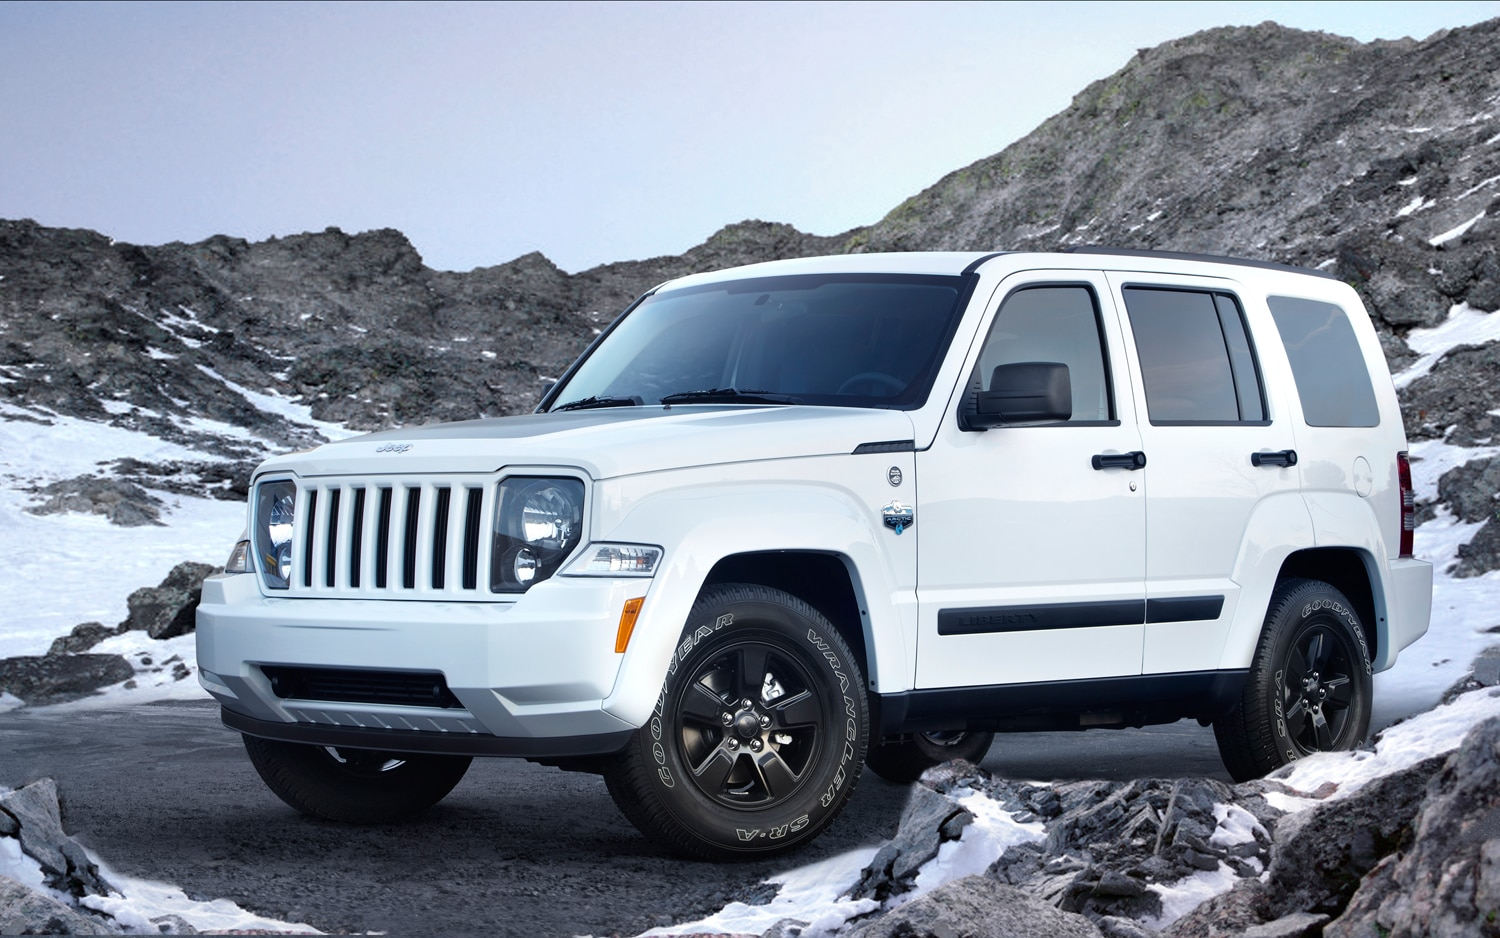 Jeep 2012 jeep liberty specs : Jeep Brings Arctic Edition Package To U.S.-Spec 2012 Wrangler ...